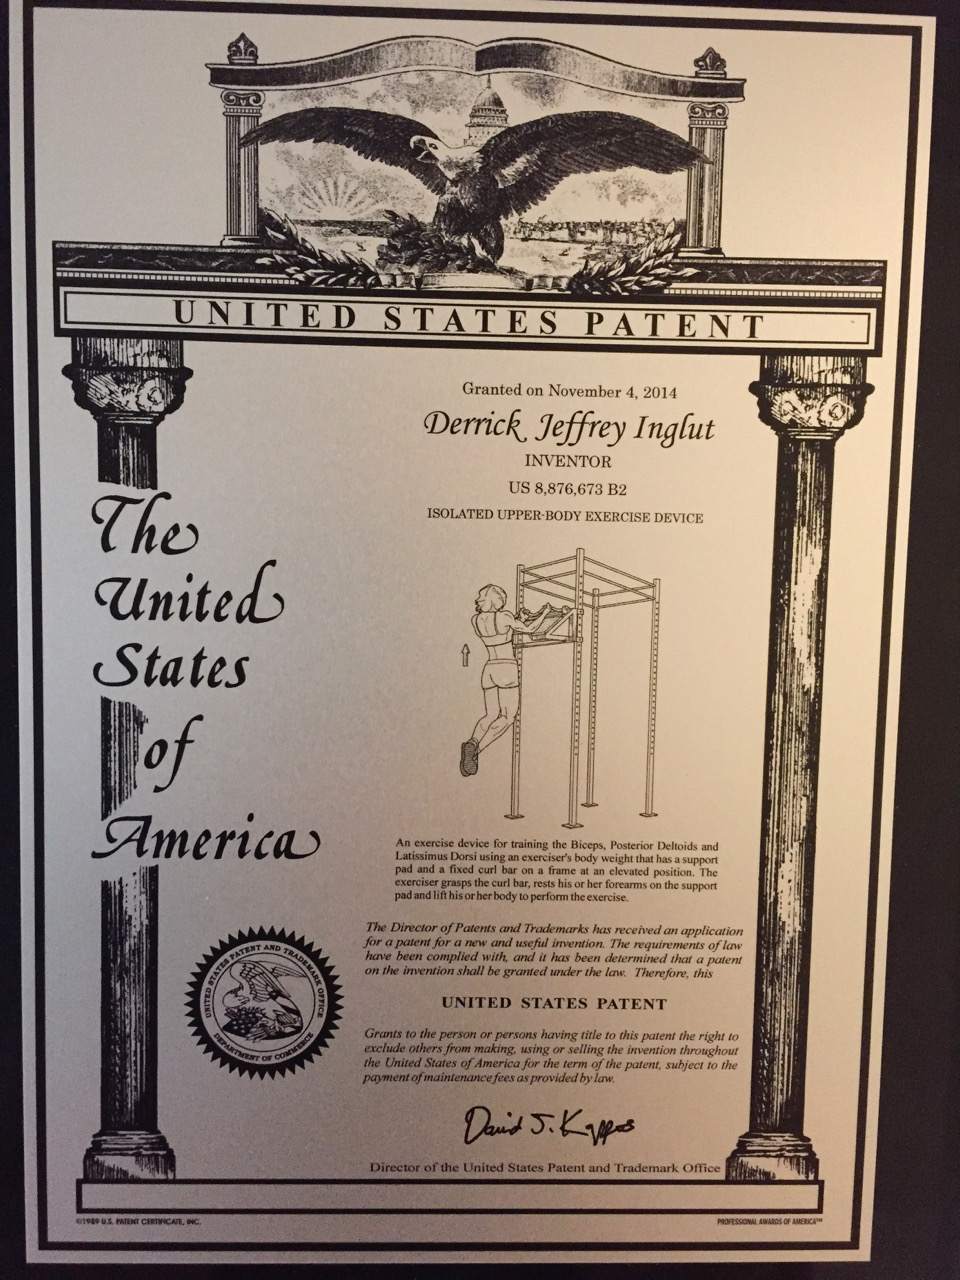 Patent numbers: 9192804, 8876673